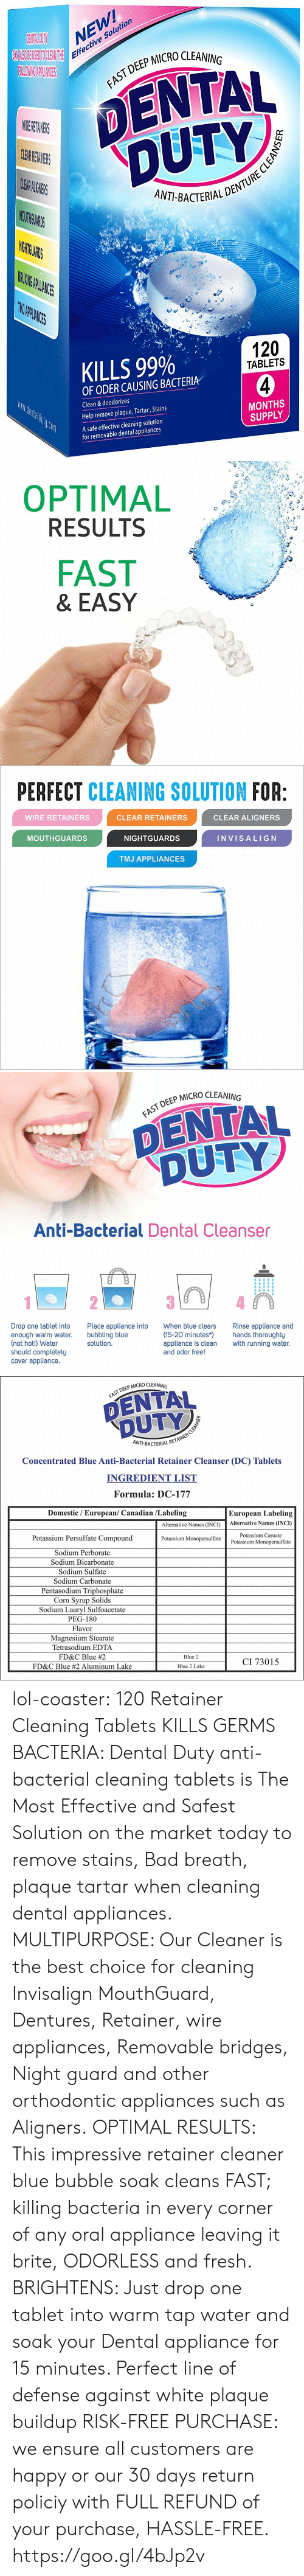 Appliance: NEW  e Solution  Effectiv  P MICRO CLEANING  DENTAL  DUTY  AST DEEP  CL  ANT-BACTERIALD  THG  PLIANIES  KILLS 99%  120  TABLETS  OF ODER CAUSING BACTERIA  Clean & deodorizes  Help remove plaque, Tartar, Stains  A safe effective cleaning solution  MONTHS  SUPPLY  for removable dental appliances   OPTIMAL  RESULTS  FAST  & EASY   PERFECT CLEANING SOLUTION FOR  WIRE RETAINERS  CLEAR RETAINERS  CLEAR ALIGNERS  MOUTHGUARDS  NIGHTGUARDS  INVISALIG N  TMJ APPLIANCES   DEEP MICRO CLEANING  DENTAL  DUTY  Anti-Bacterial Dental Cleanser  Drop one tablet into  enough warm water.  (not hot!) Water  should completely  cover appliance.  Place appliance into  bubbling blue  solution  When blue clears  Rinse appliance and  (15-20 minutes*hands thoroughly  appliance is clean with running water.  and odor free!   P MICRO CLEANING  FAST DEEP  NT-BACTERIAL R  Concentrated Blue Anti-Bacterial Retainer Cleanser (DC) Tablets  INGREDIENT LIST  Formula: DC-177  Domestic / European/ Canadian /Labeling  European Labeling  Alternative Names (INCI)Alternative Names (INCI)  Potassium Persulfate Compound  Sodium Perborate  Sodium Bicarbonate  Sodium Sulfate  Sodium Carbonate  Pentasodium Triphosphate  Corn Svrup Solids  Sodium Lauryl Sulfoacetate  PEG-180  Flavor  Magnesium Stearate  Tetrasodium EDTA  FD&C Blue #2  FD&C Blue #2 Aluminum Lake  Potassium Caroate  Potassium Monopersulfate  Potassium Monopersulfate  Blue 2  CI 73015  Blue 2 Lake lol-coaster:    120 Retainer Cleaning Tablets KILLS GERMS  BACTERIA: Dental Duty anti-bacterial cleaning tablets is The Most Effective and Safest Solution on the market today to remove stains, Bad breath, plaque  tartar when cleaning dental appliances. MULTIPURPOSE: Our Cleaner is the best choice for cleaning Invisalign MouthGuard, Dentures, Retainer, wire appliances, Removable bridges, Night guard and other orthodontic appliances such as Aligners. OPTIMAL RESULTS: This impressive retainer cleaner blue bubble soak cleans FAST; killing bacteria in ev